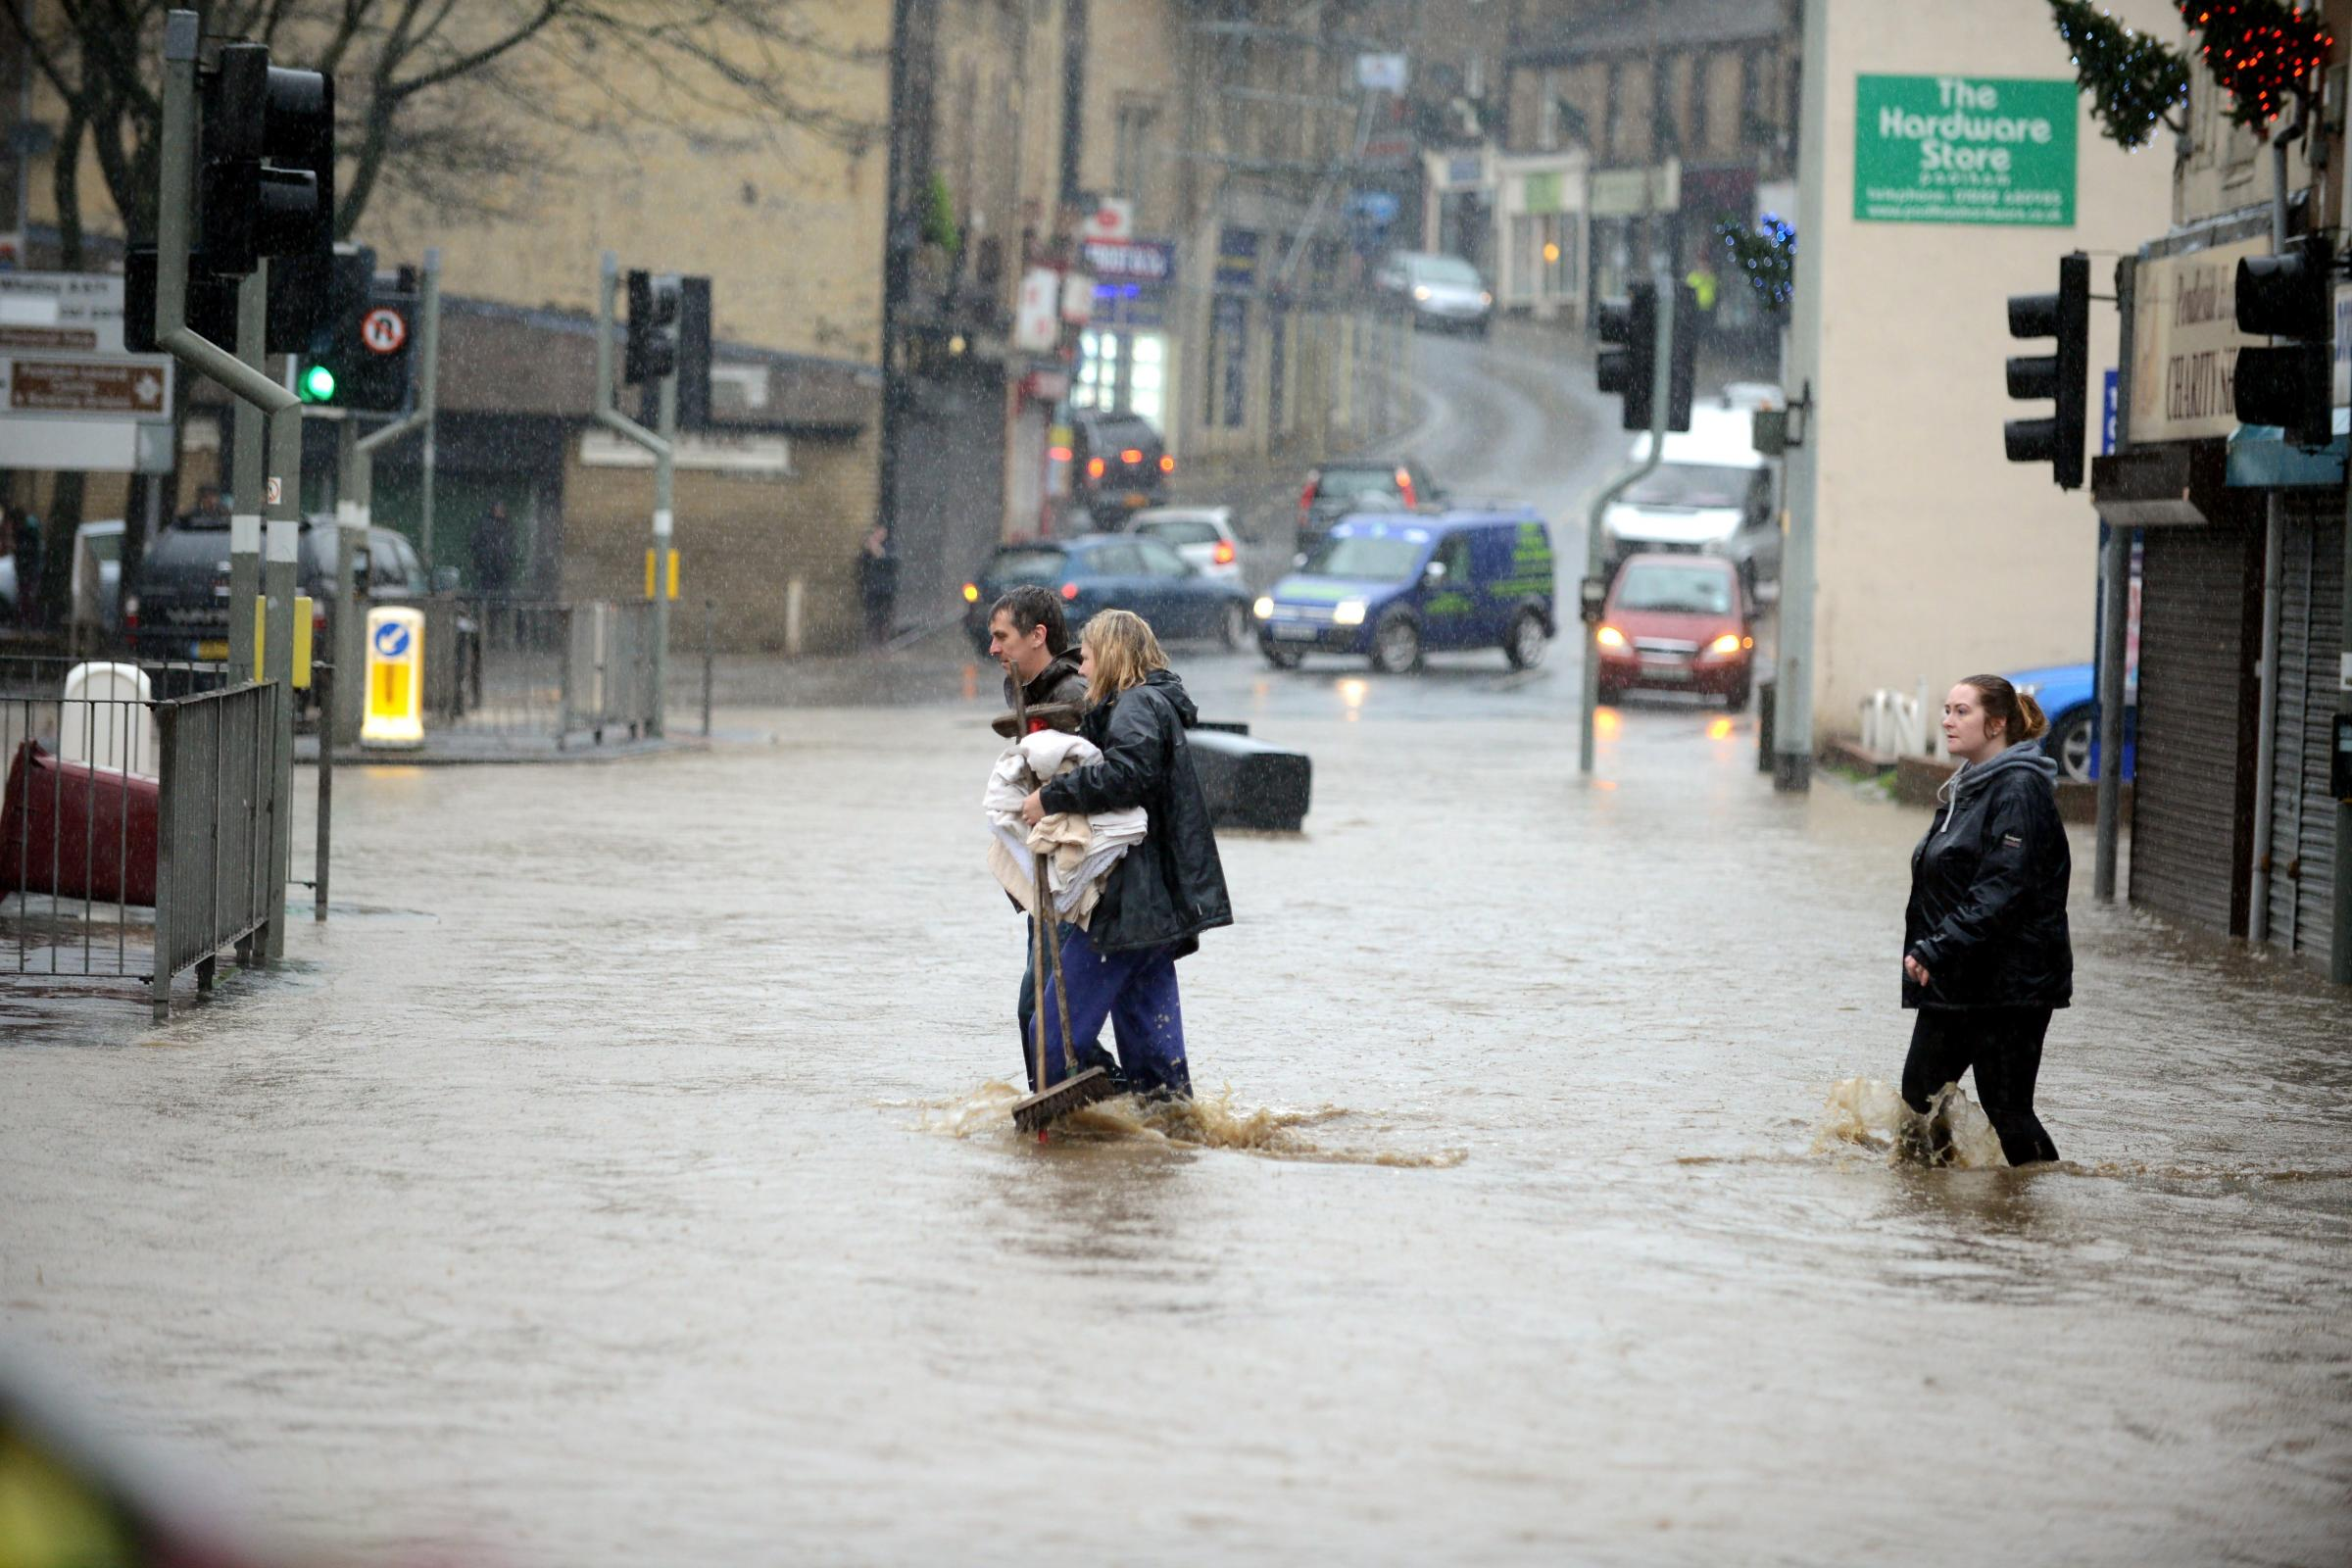 The Boxing Day 2015 flooding in Padiham.